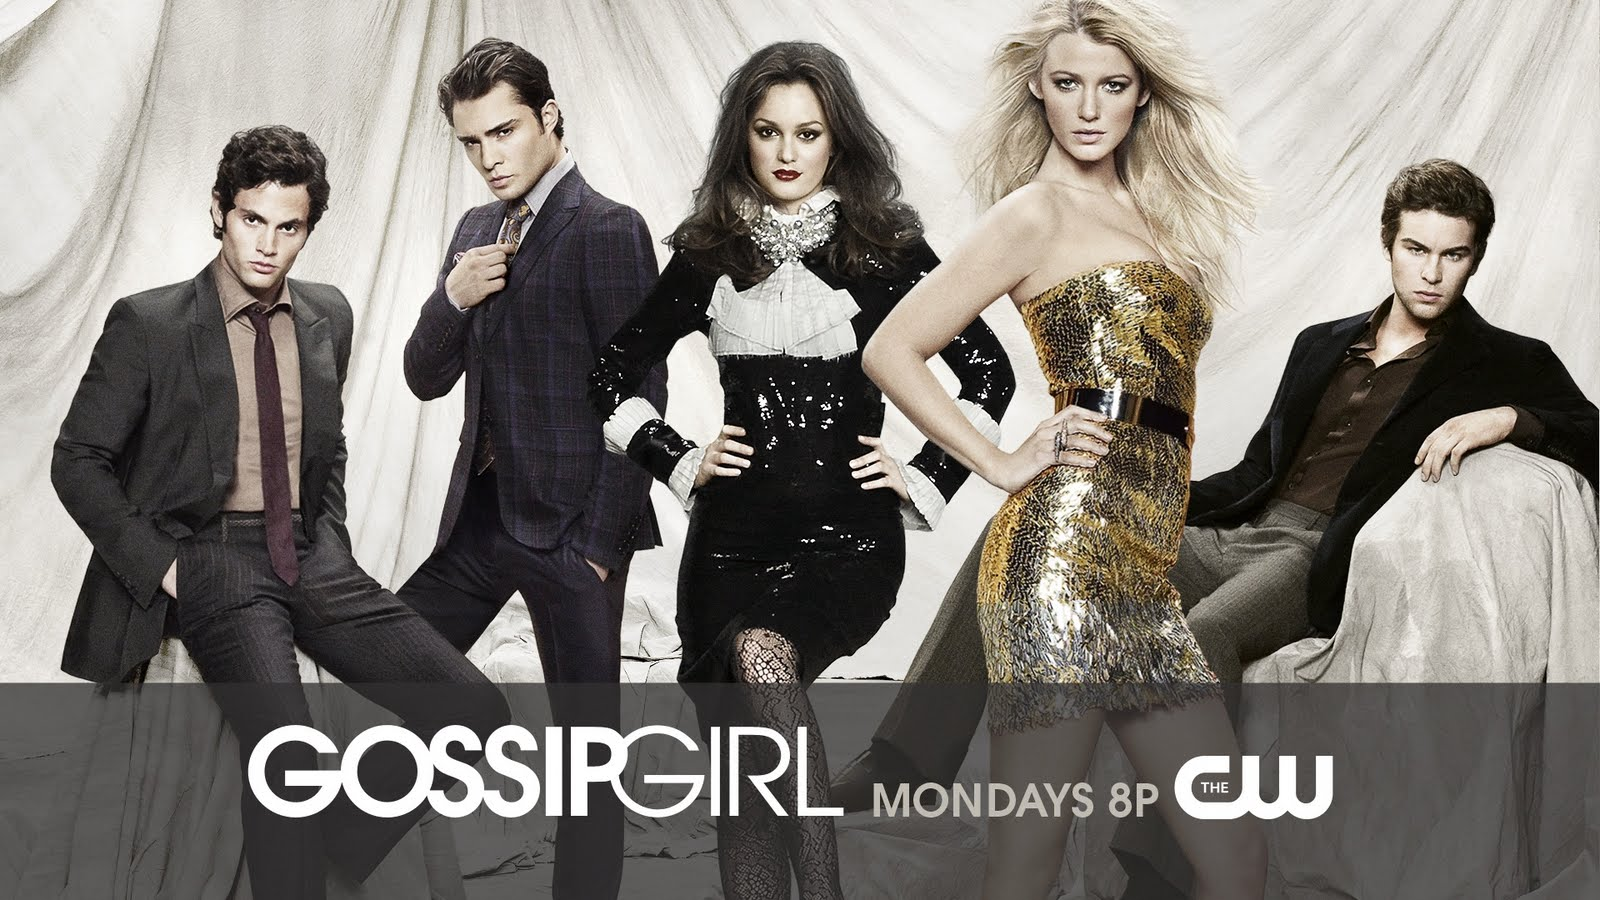 L'uragano Sandy manda in tilt le serie tv: rimandate Gossip Girl e How I Met Your Mother